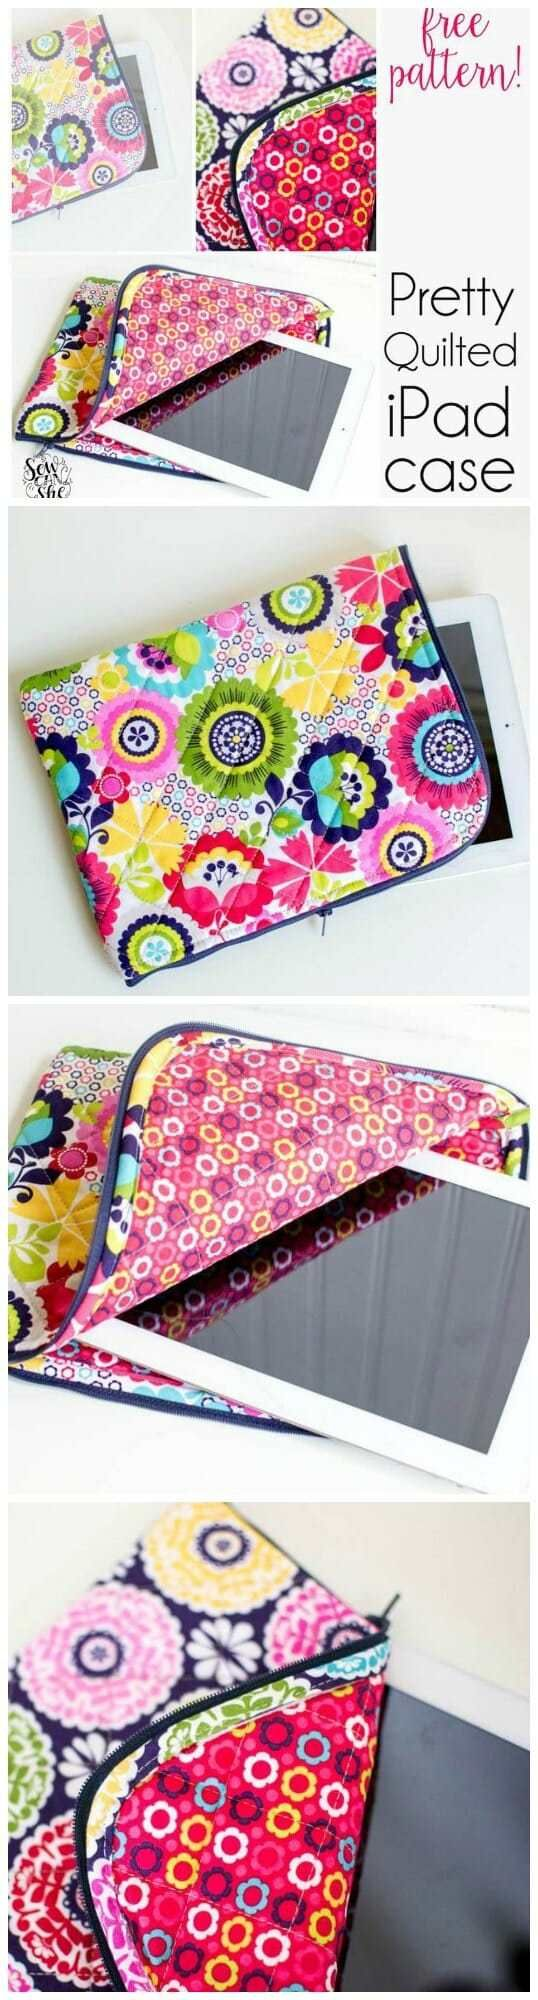 Pretty quilted IPad case – free pattern